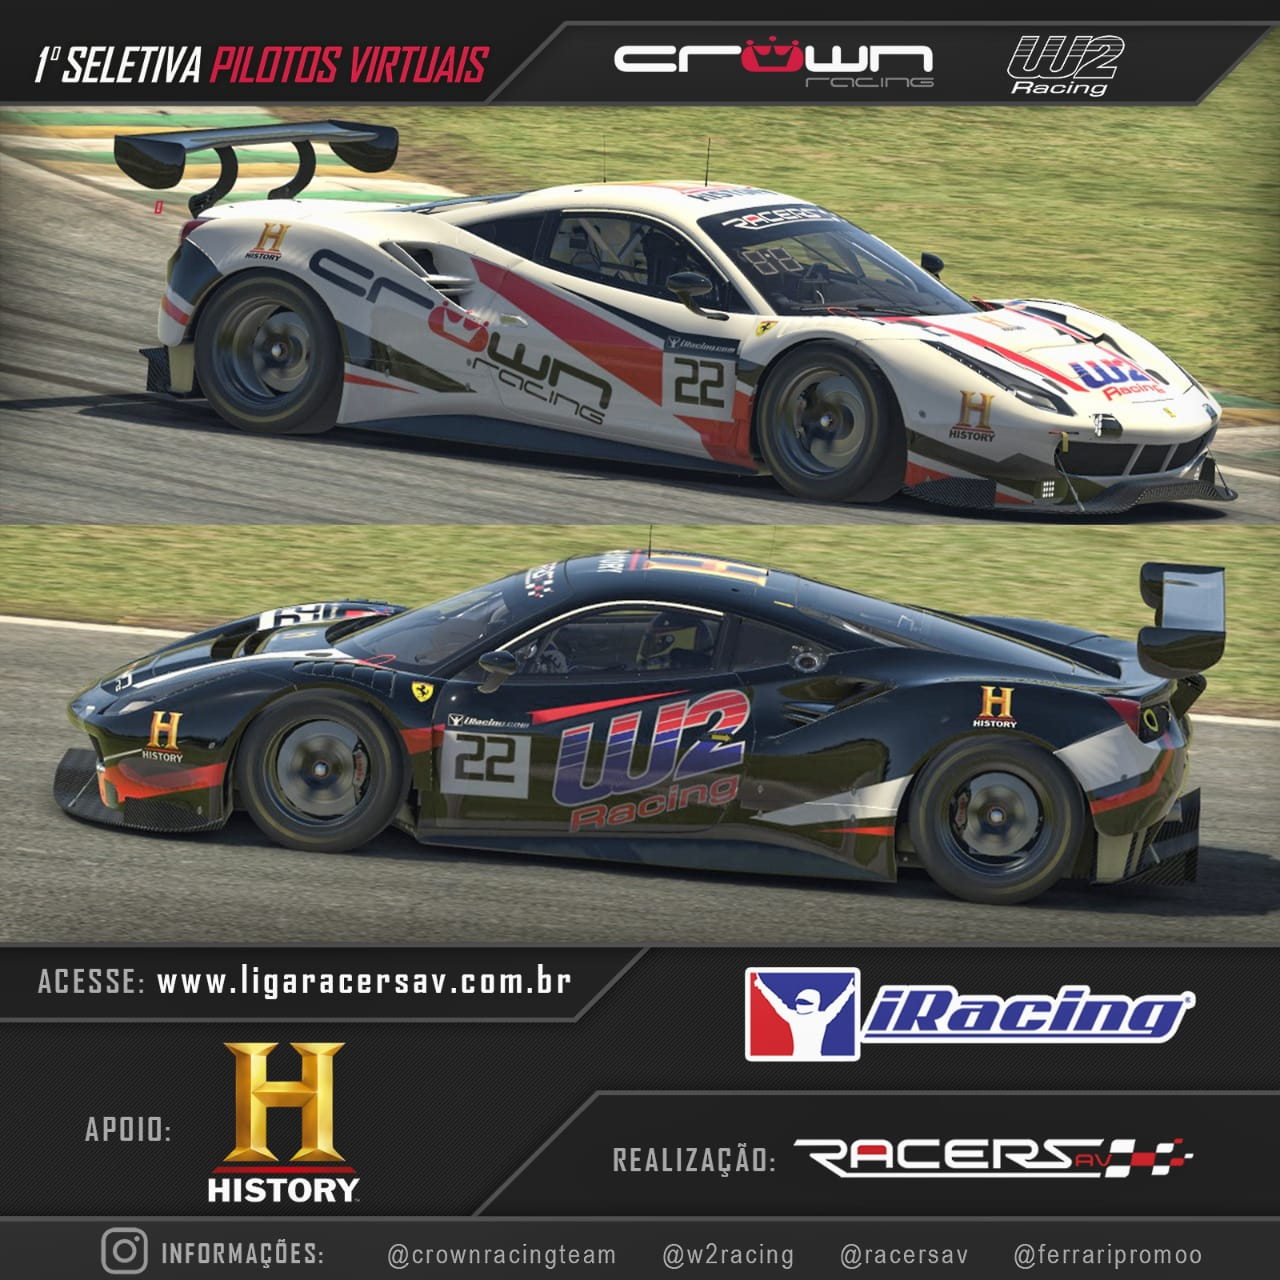 Photo of Stock Car – Com 330 inscritos, seletiva do piloto oficial da Crown Racing em automobilismo virtual tem seus 40 finalistas na plataforma iRacing